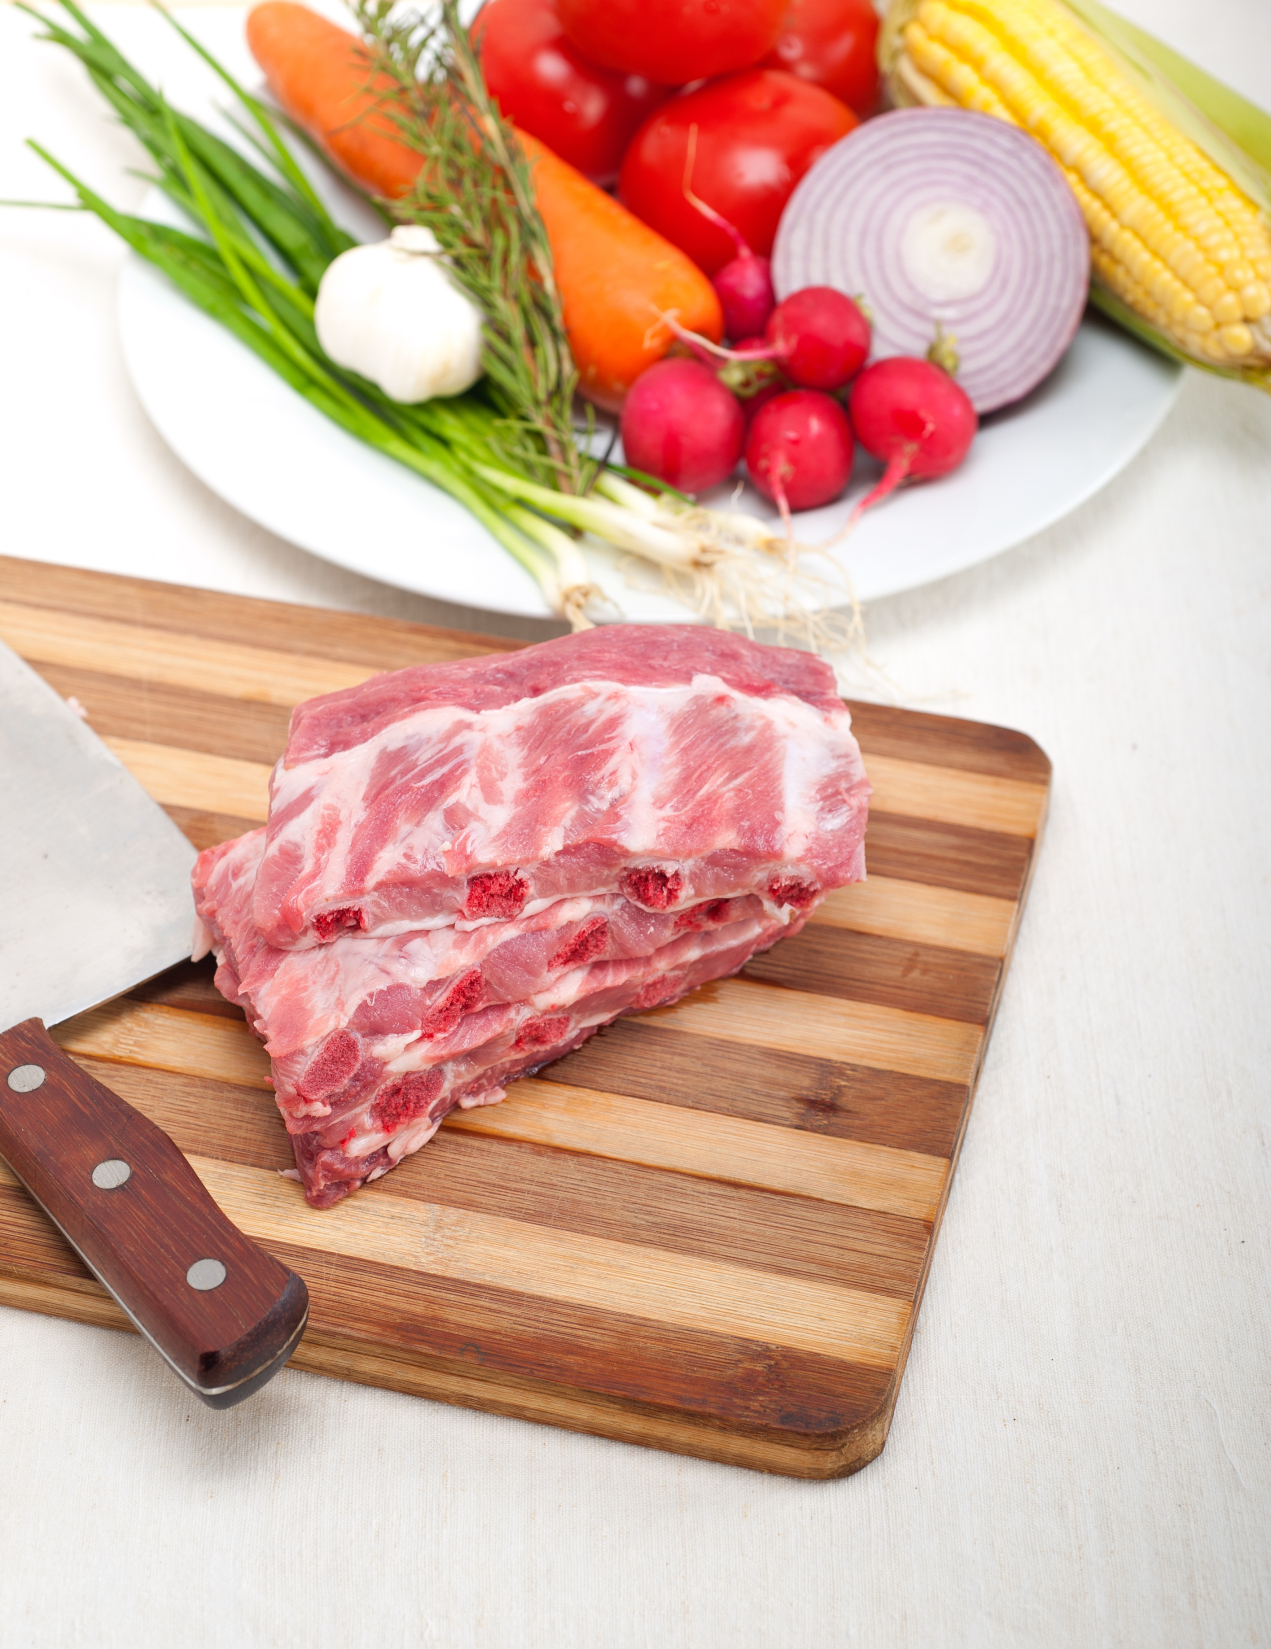 kozzi-4435259-chopping_fresh_pork_ribs_a